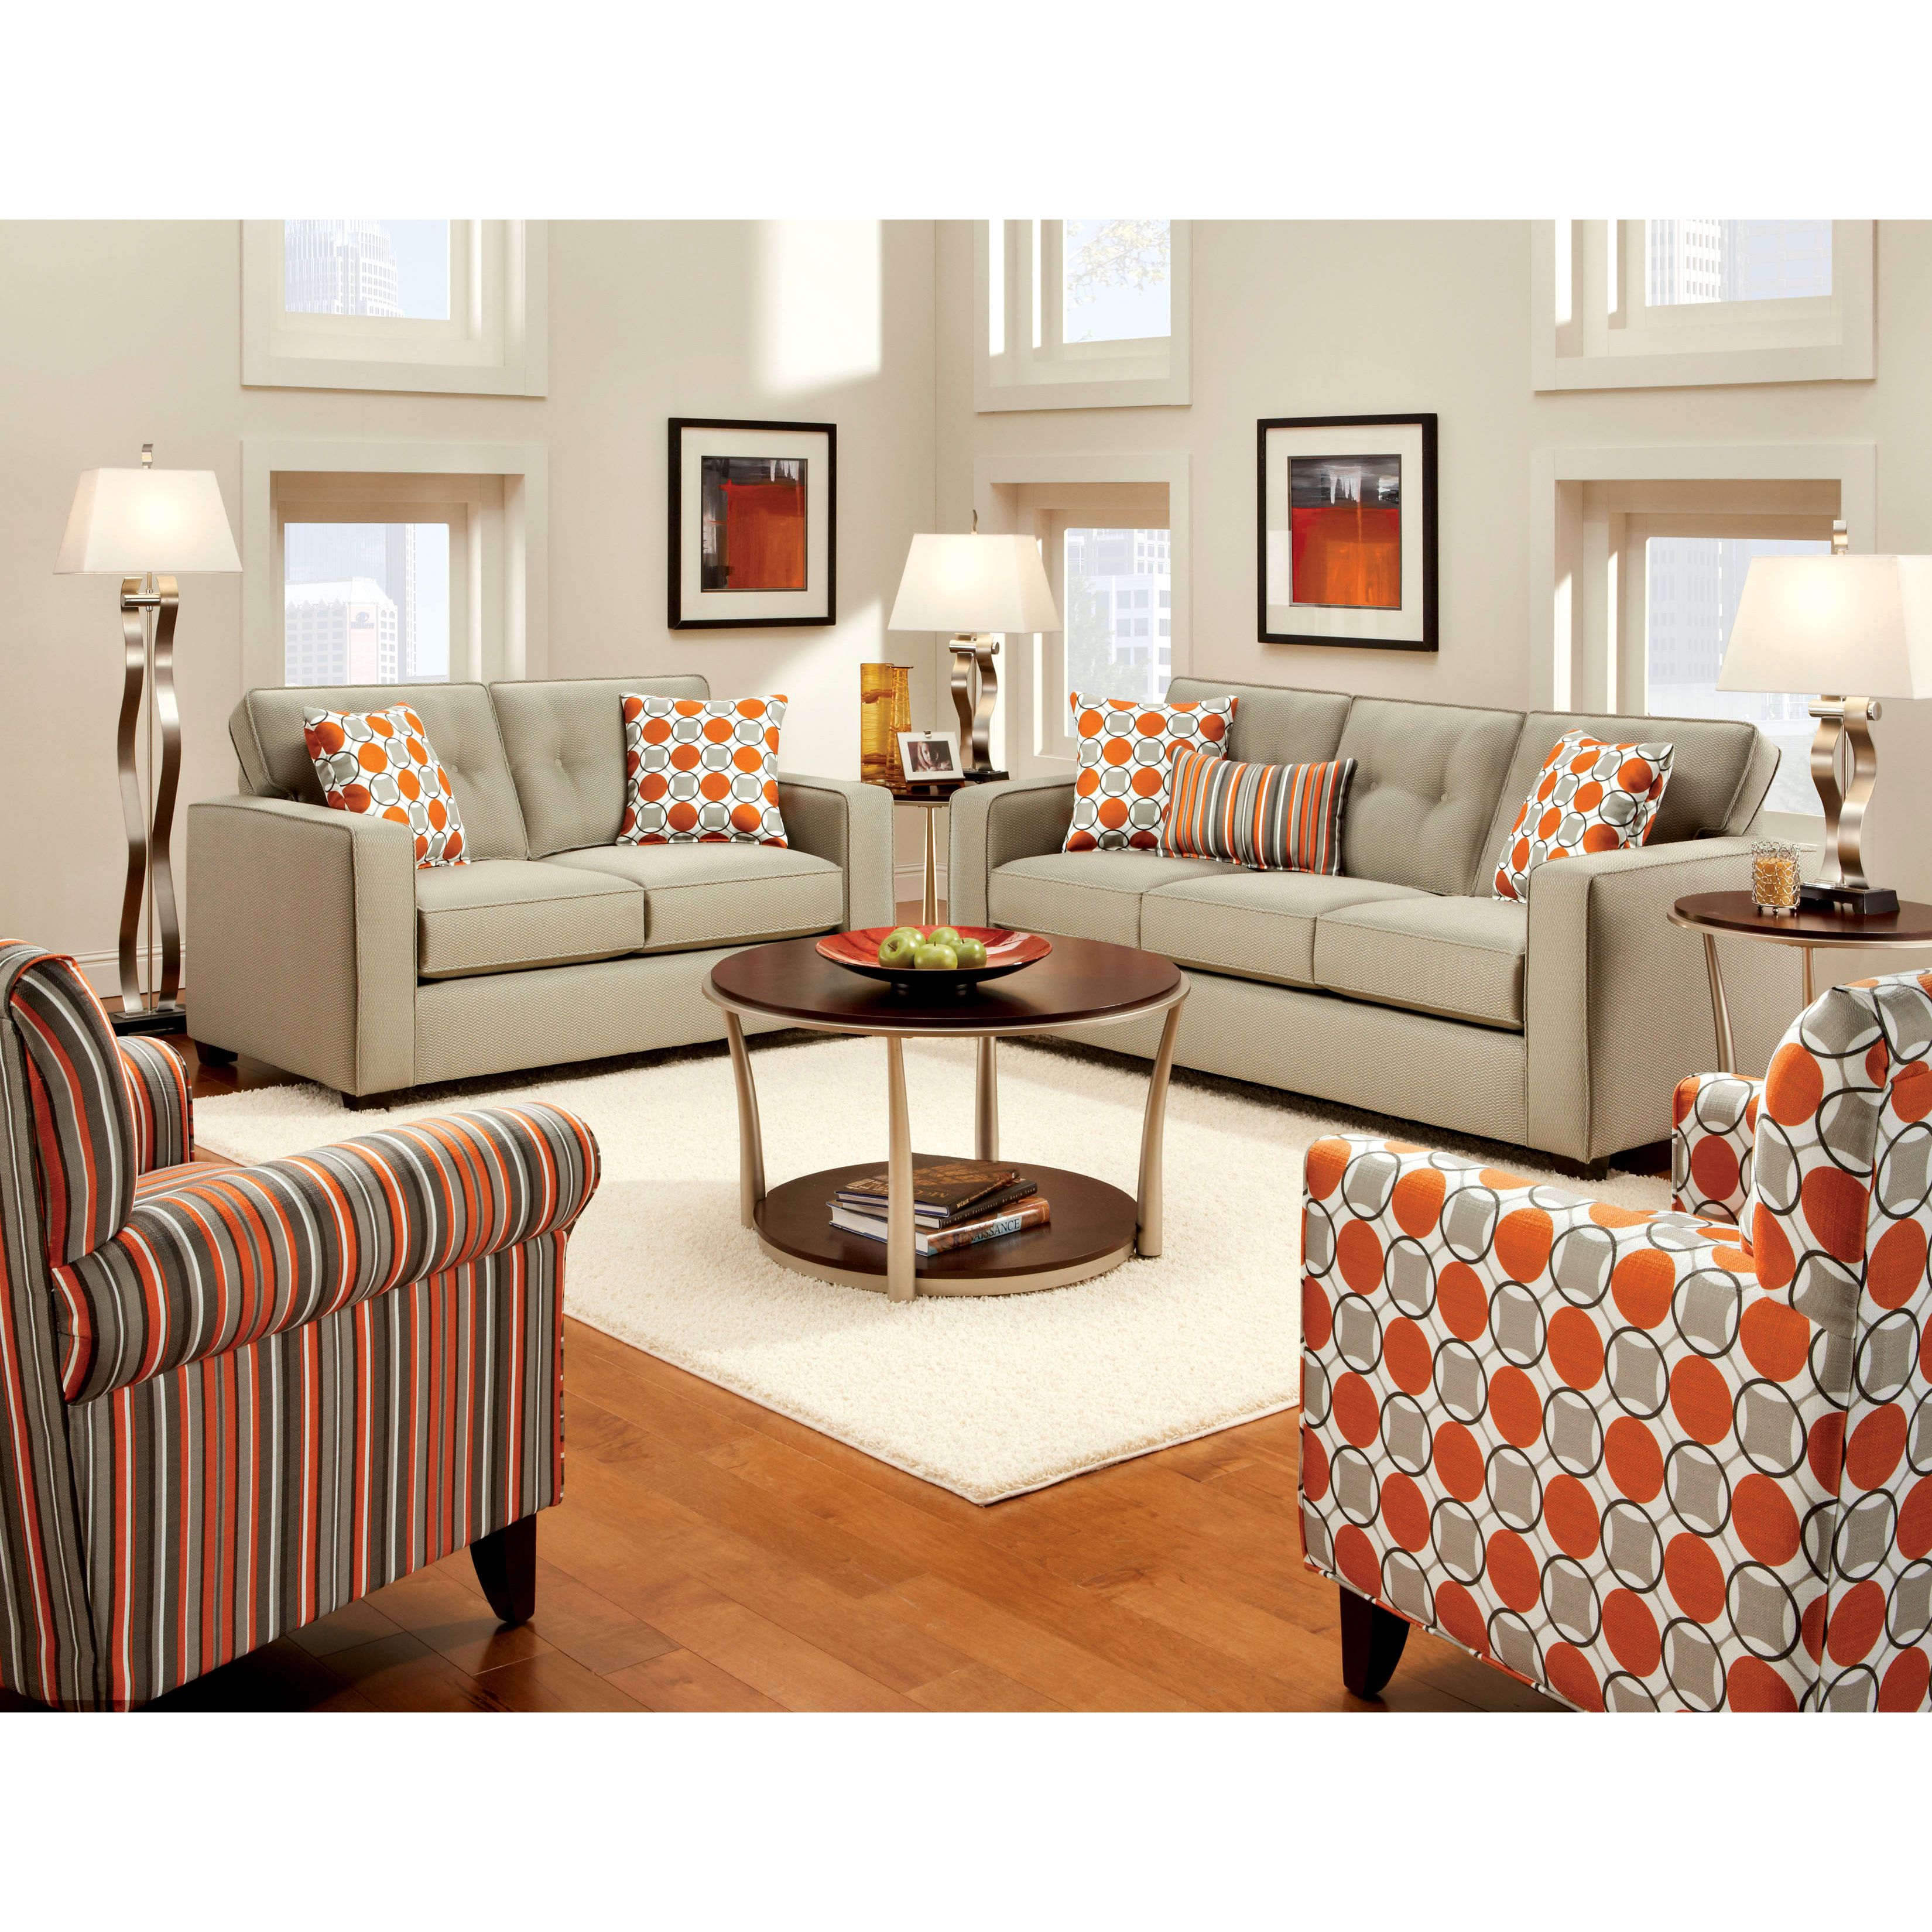 Vogue Fabric Lounge Suite by Furniture Haven Harvey Norman Prob